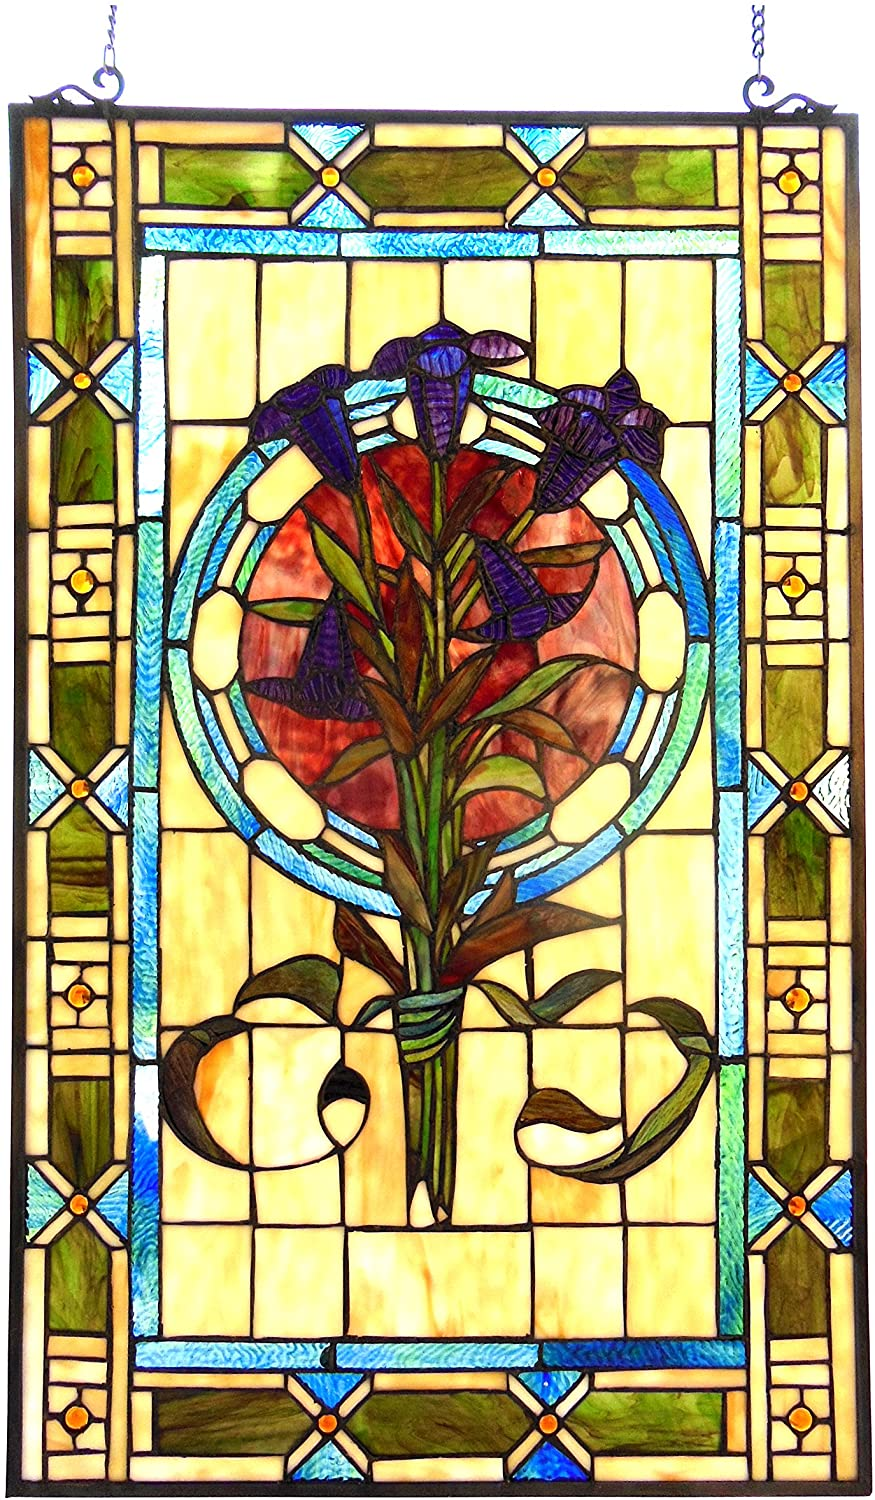 CHLOE LIGHTING 20X32 TIFFANY-GLASS TULIPS DESIGN WINDOW PANEL